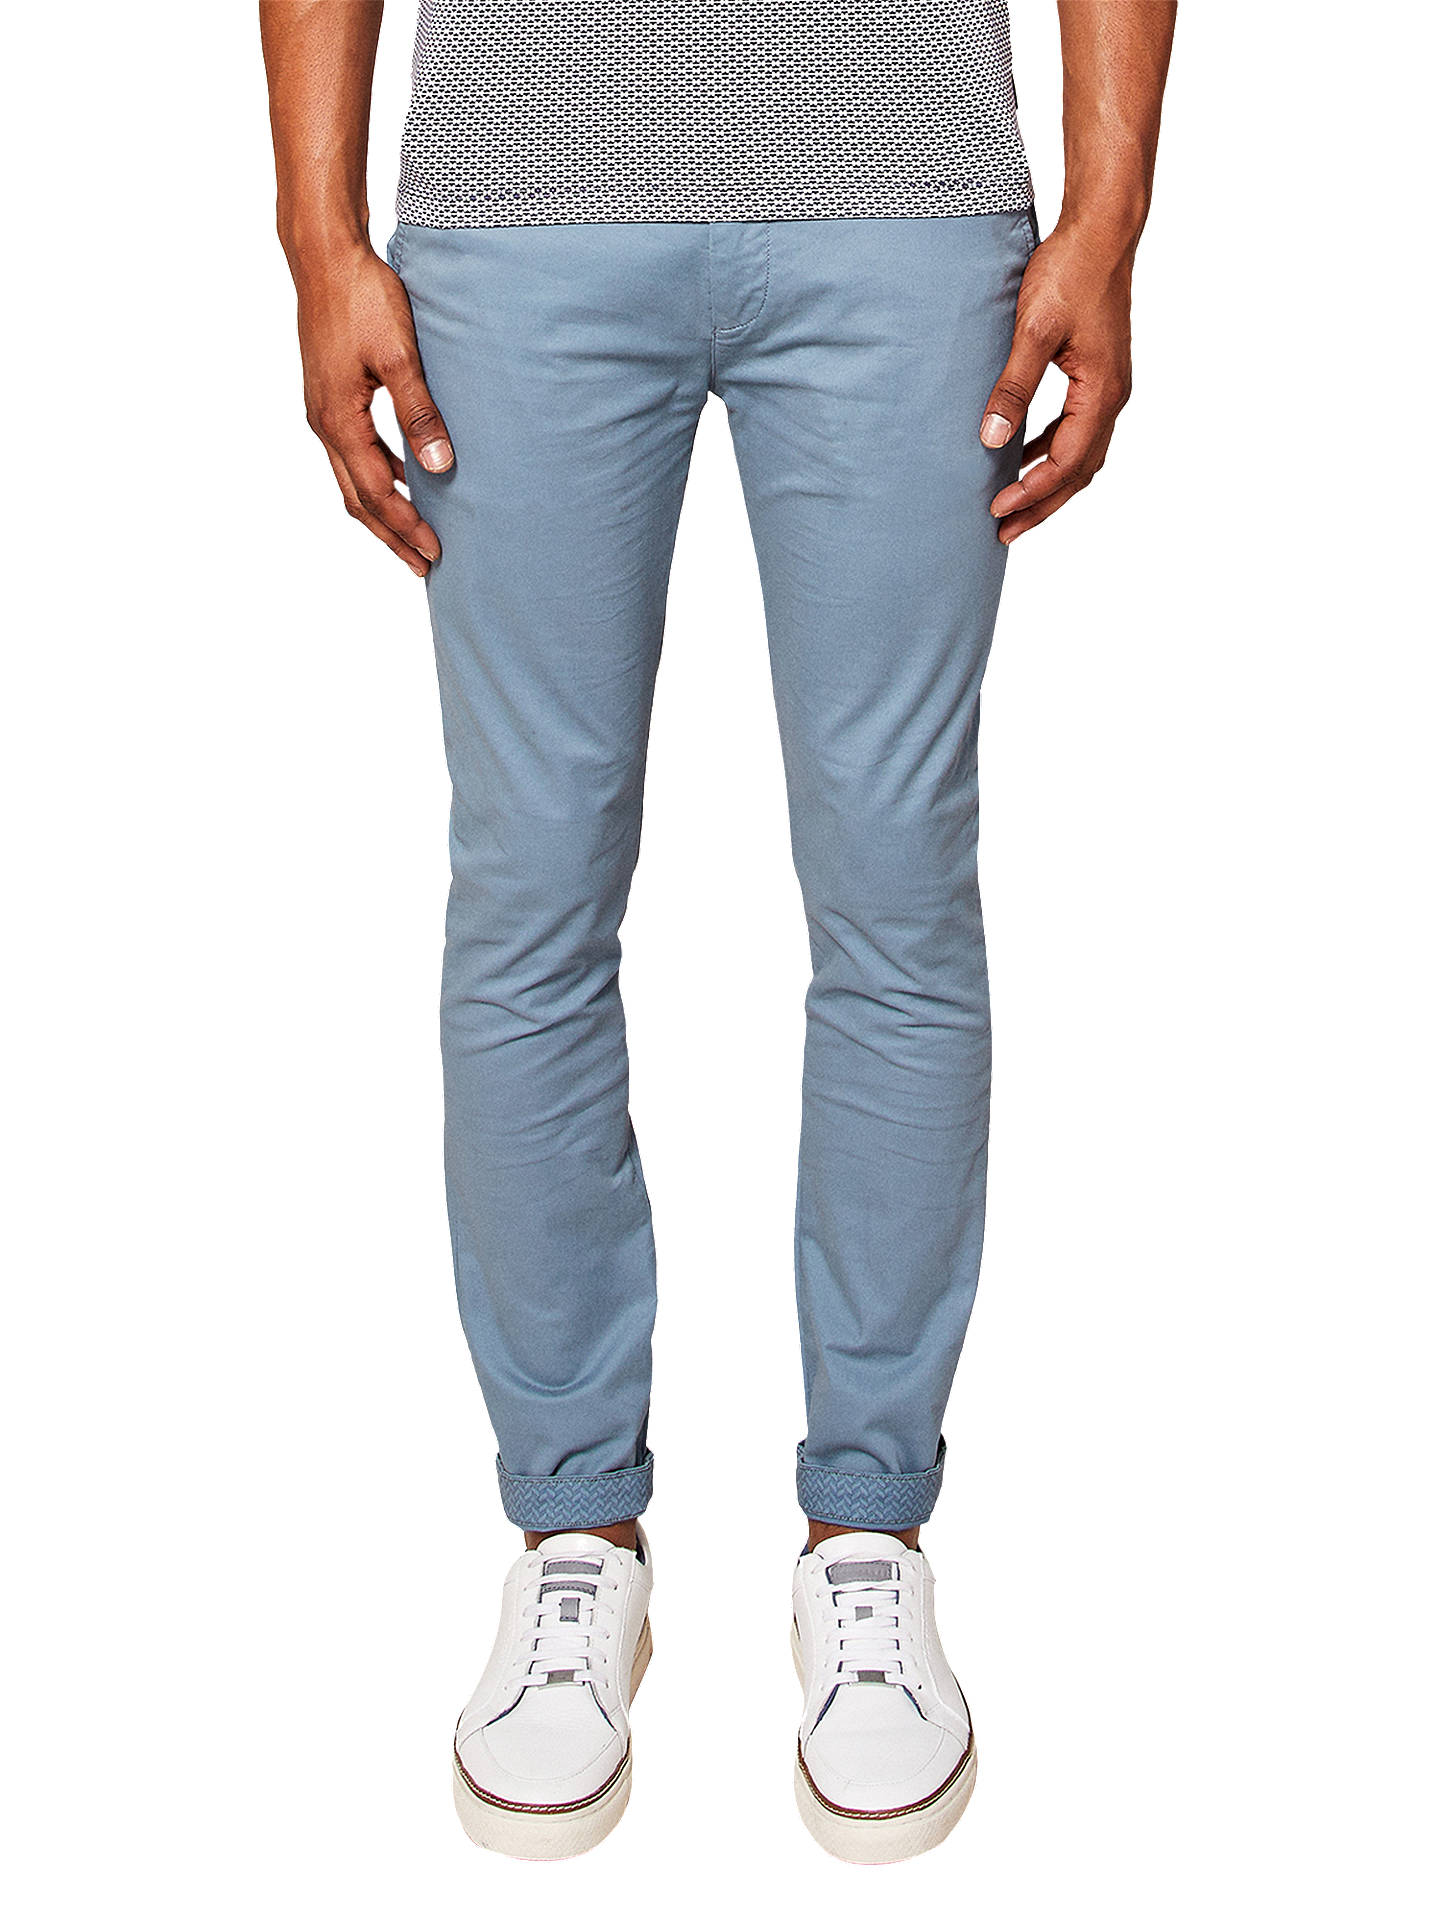 b4fa7af84 View All Men s Trousers. Previous Image Next Image. Buy Ted Baker Tapcor  Tapered Chinos